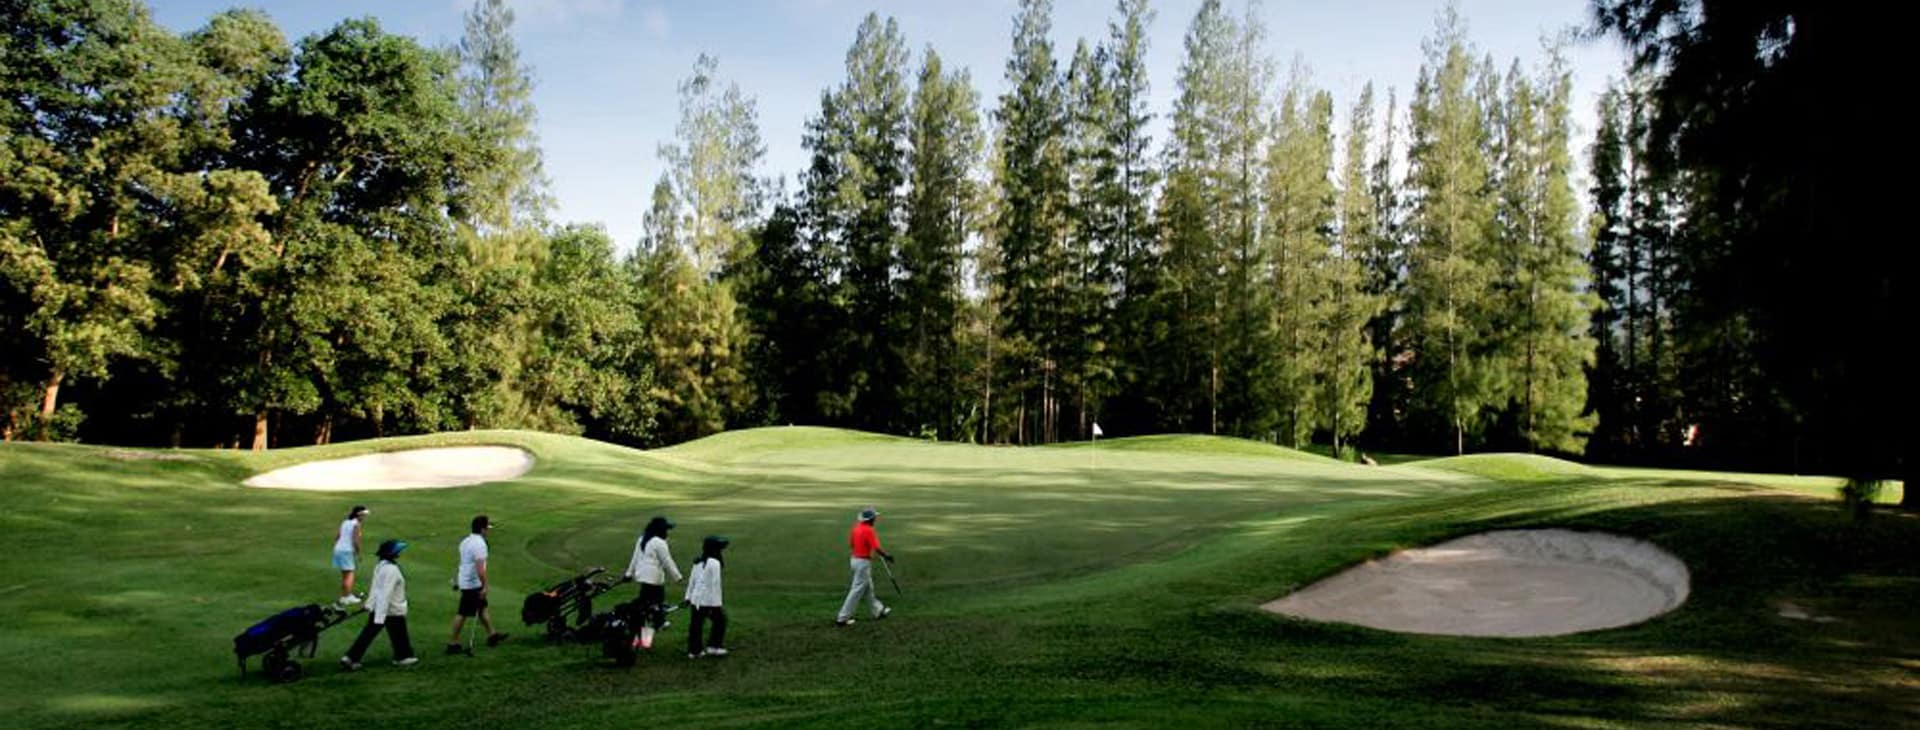 Golf Thailand_Golf Courses_Phuket_Laguna Phuket Golf Club